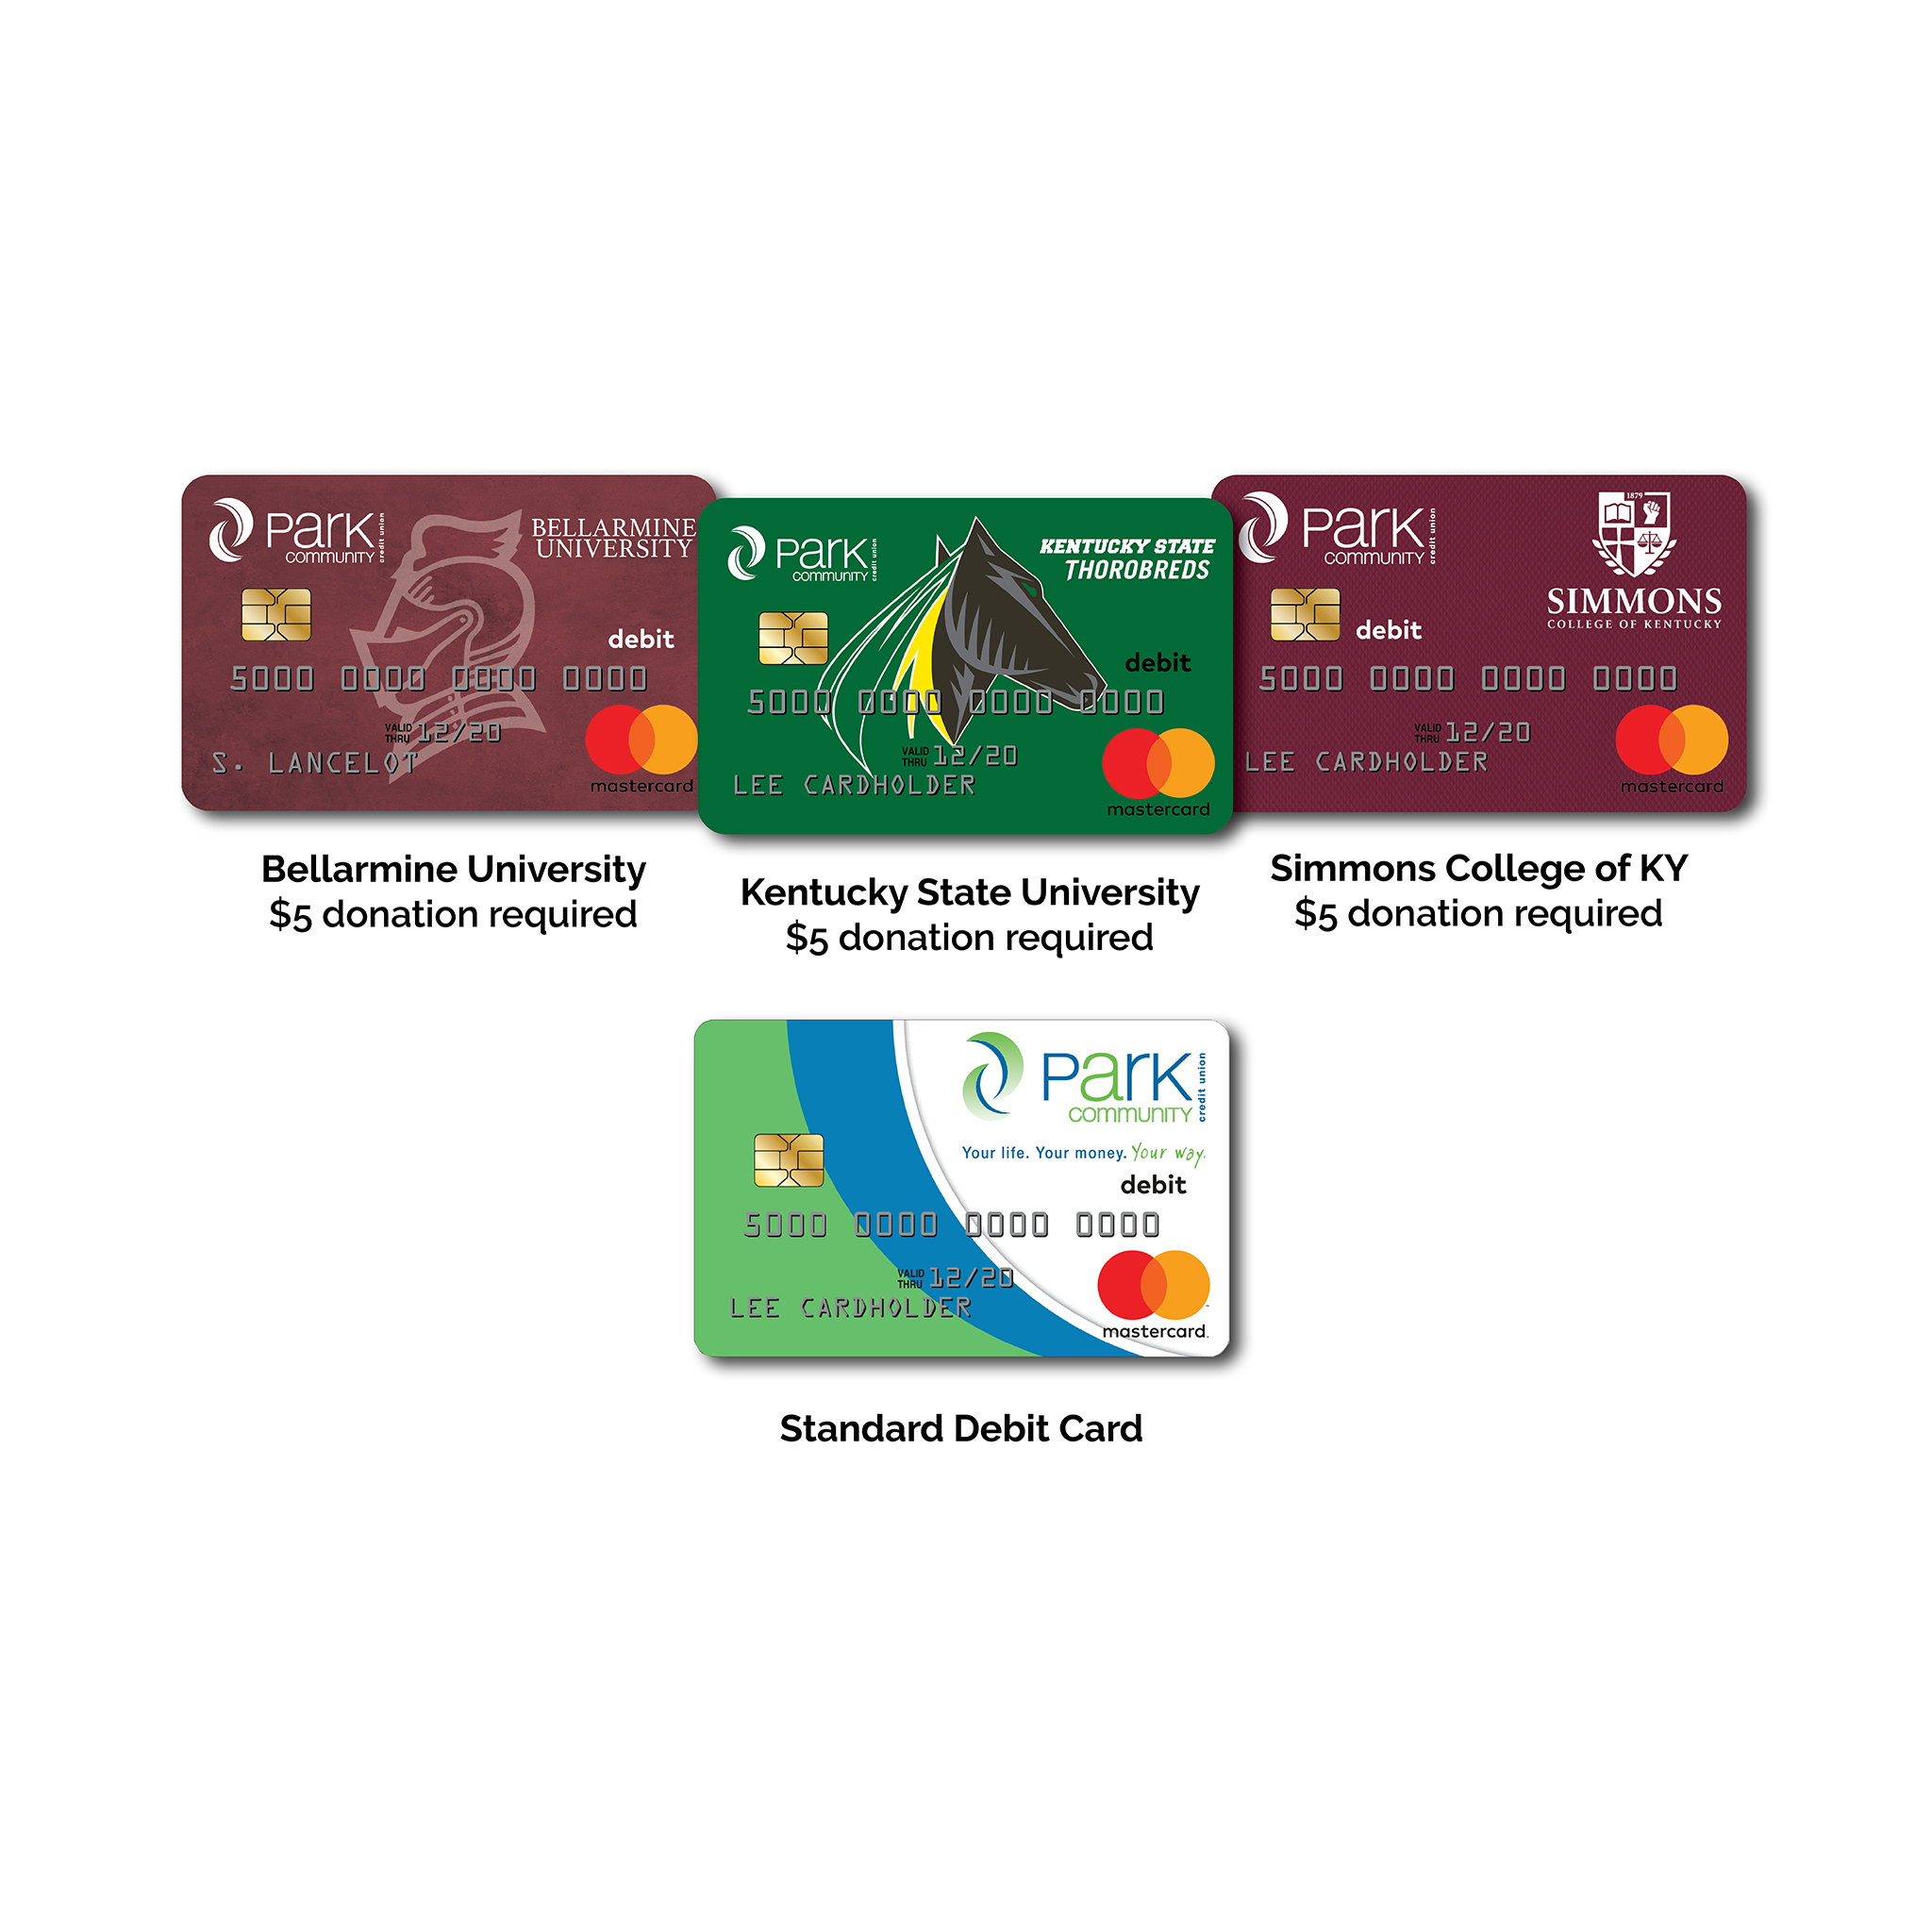 Photo of 4 debit cards with our different partner logos